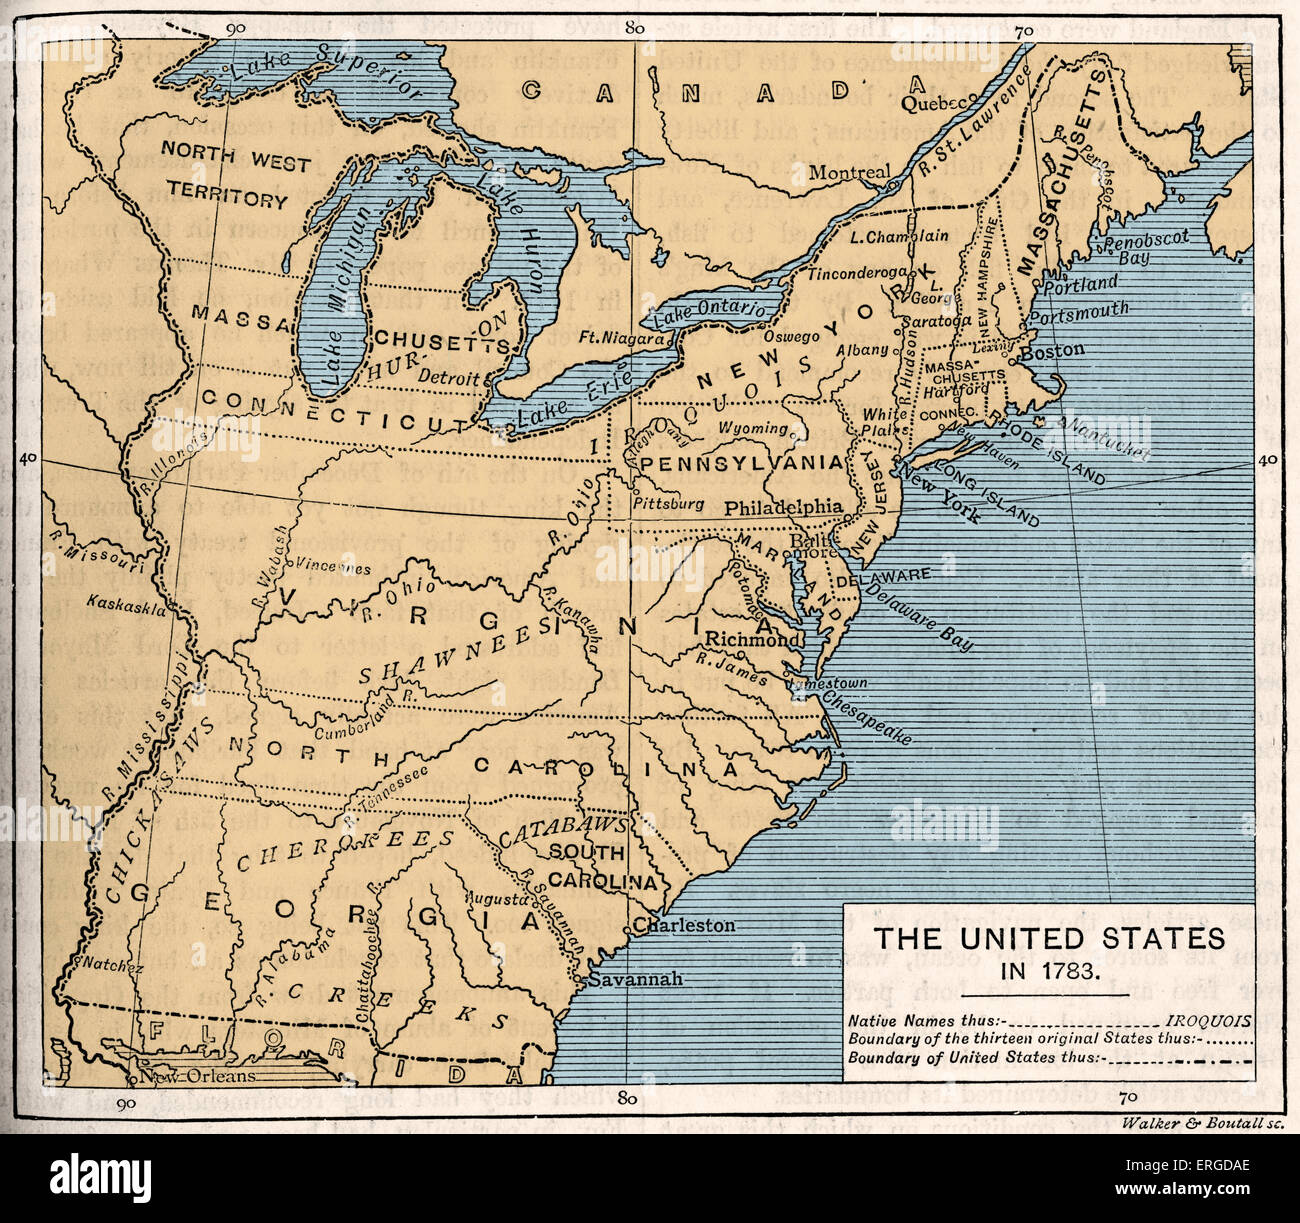 Map Of Post Independence United States 1783 Shows The Thirteen Original States